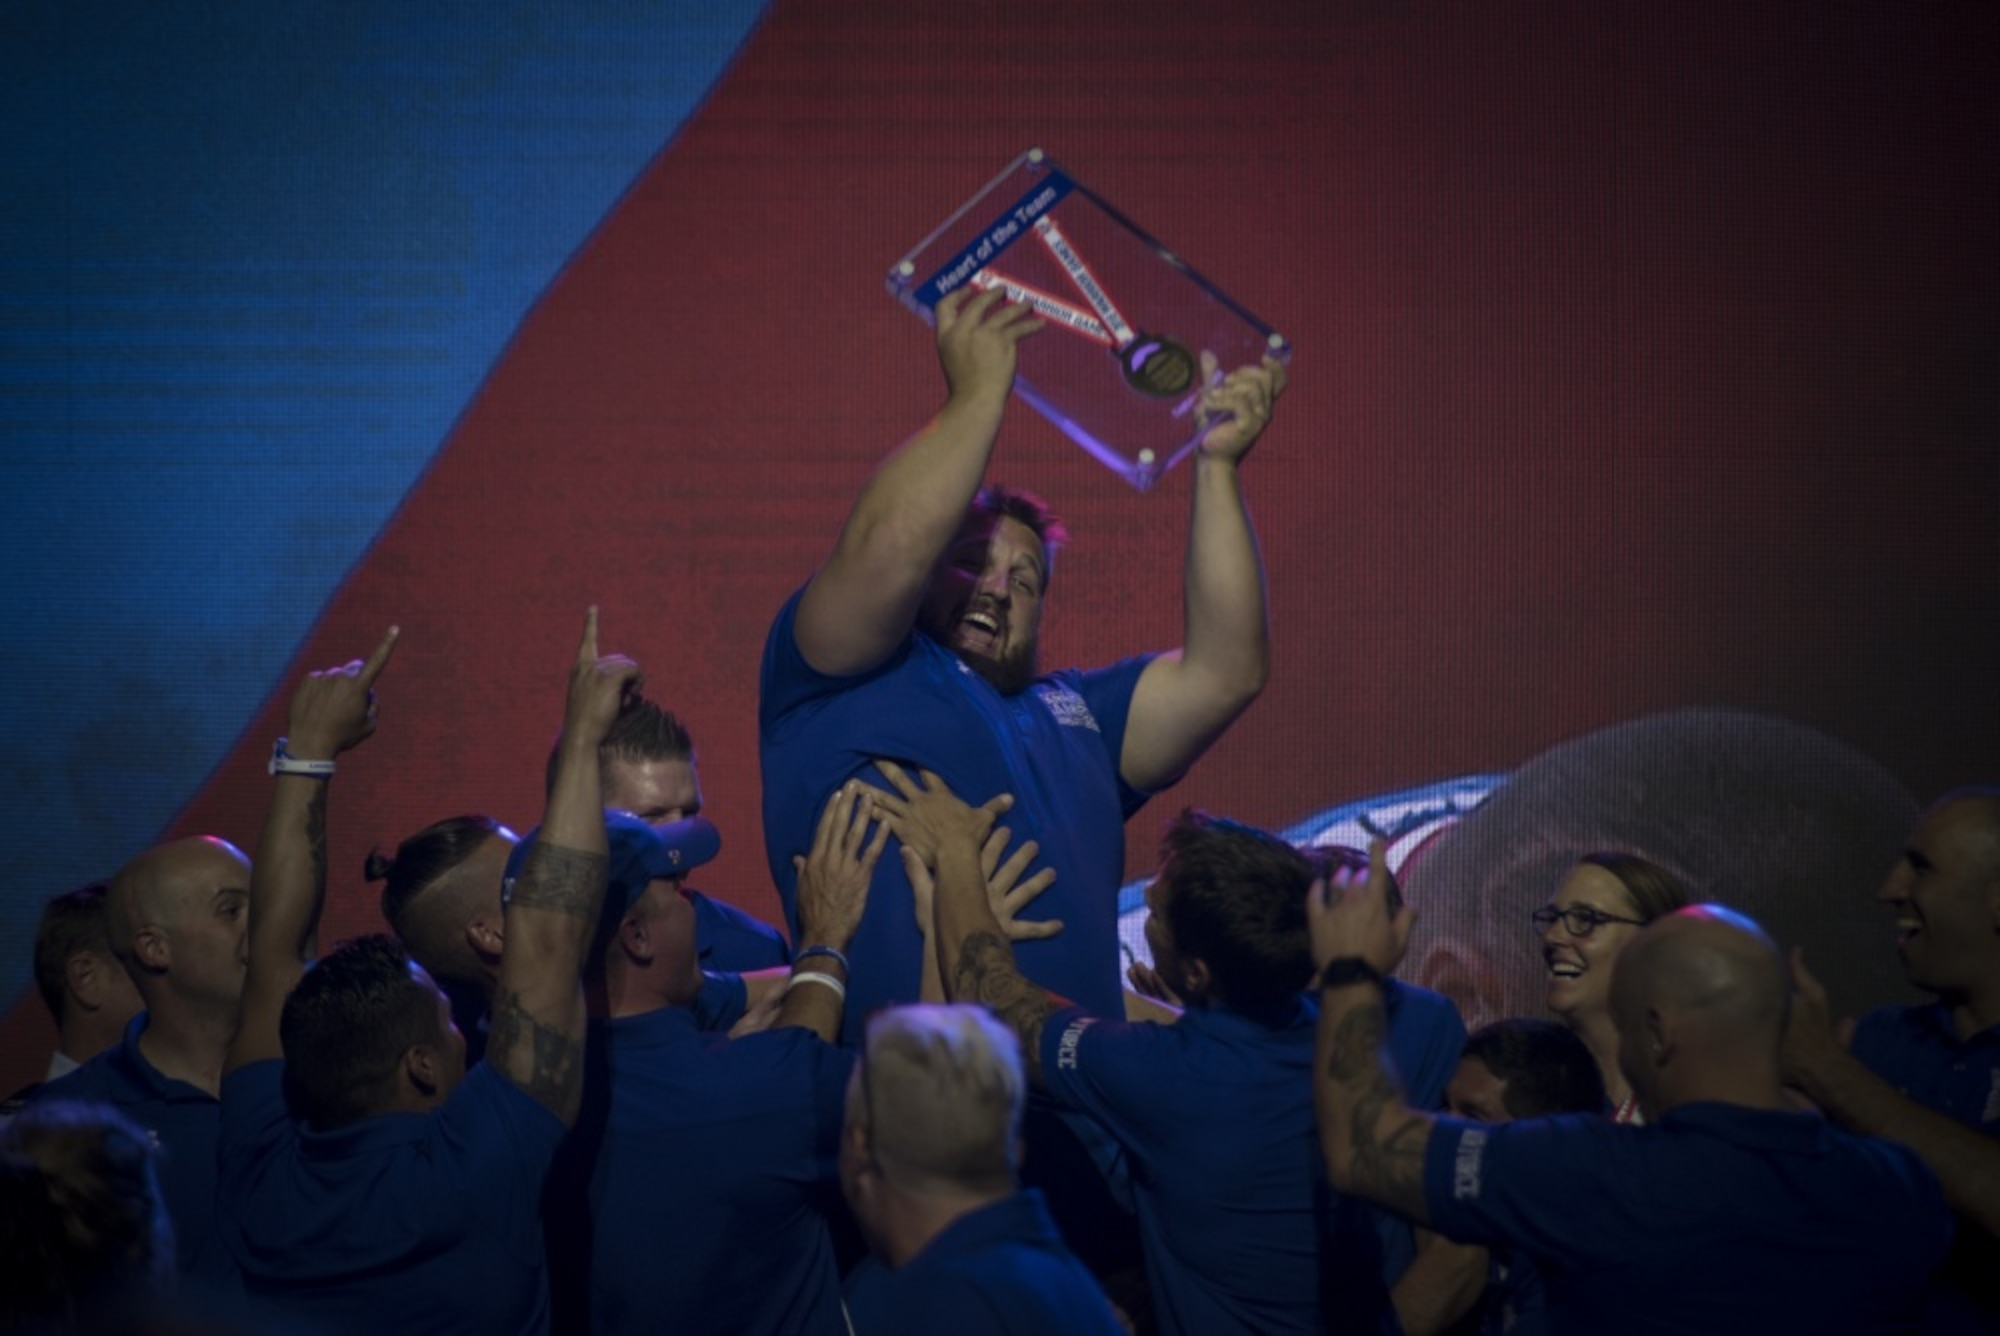 """Rob Hufford, Department of Defense Warrior Games athlete and Team Air Force member, is lifted up by his teammates after being awarded the """"heart of the team"""" award for Team Air Force durinh the Games closing ceremony at the U.S. Air Force Academy, Colorado Springs, Colorado, June 9, 2018. To determine the recipients of the heart of the team award, athletes representing each service team voted for the member of their team who they believe embodies the heart of their team. (U.S. Air Force Photo by Senior Airman Dennis Hoffman)"""